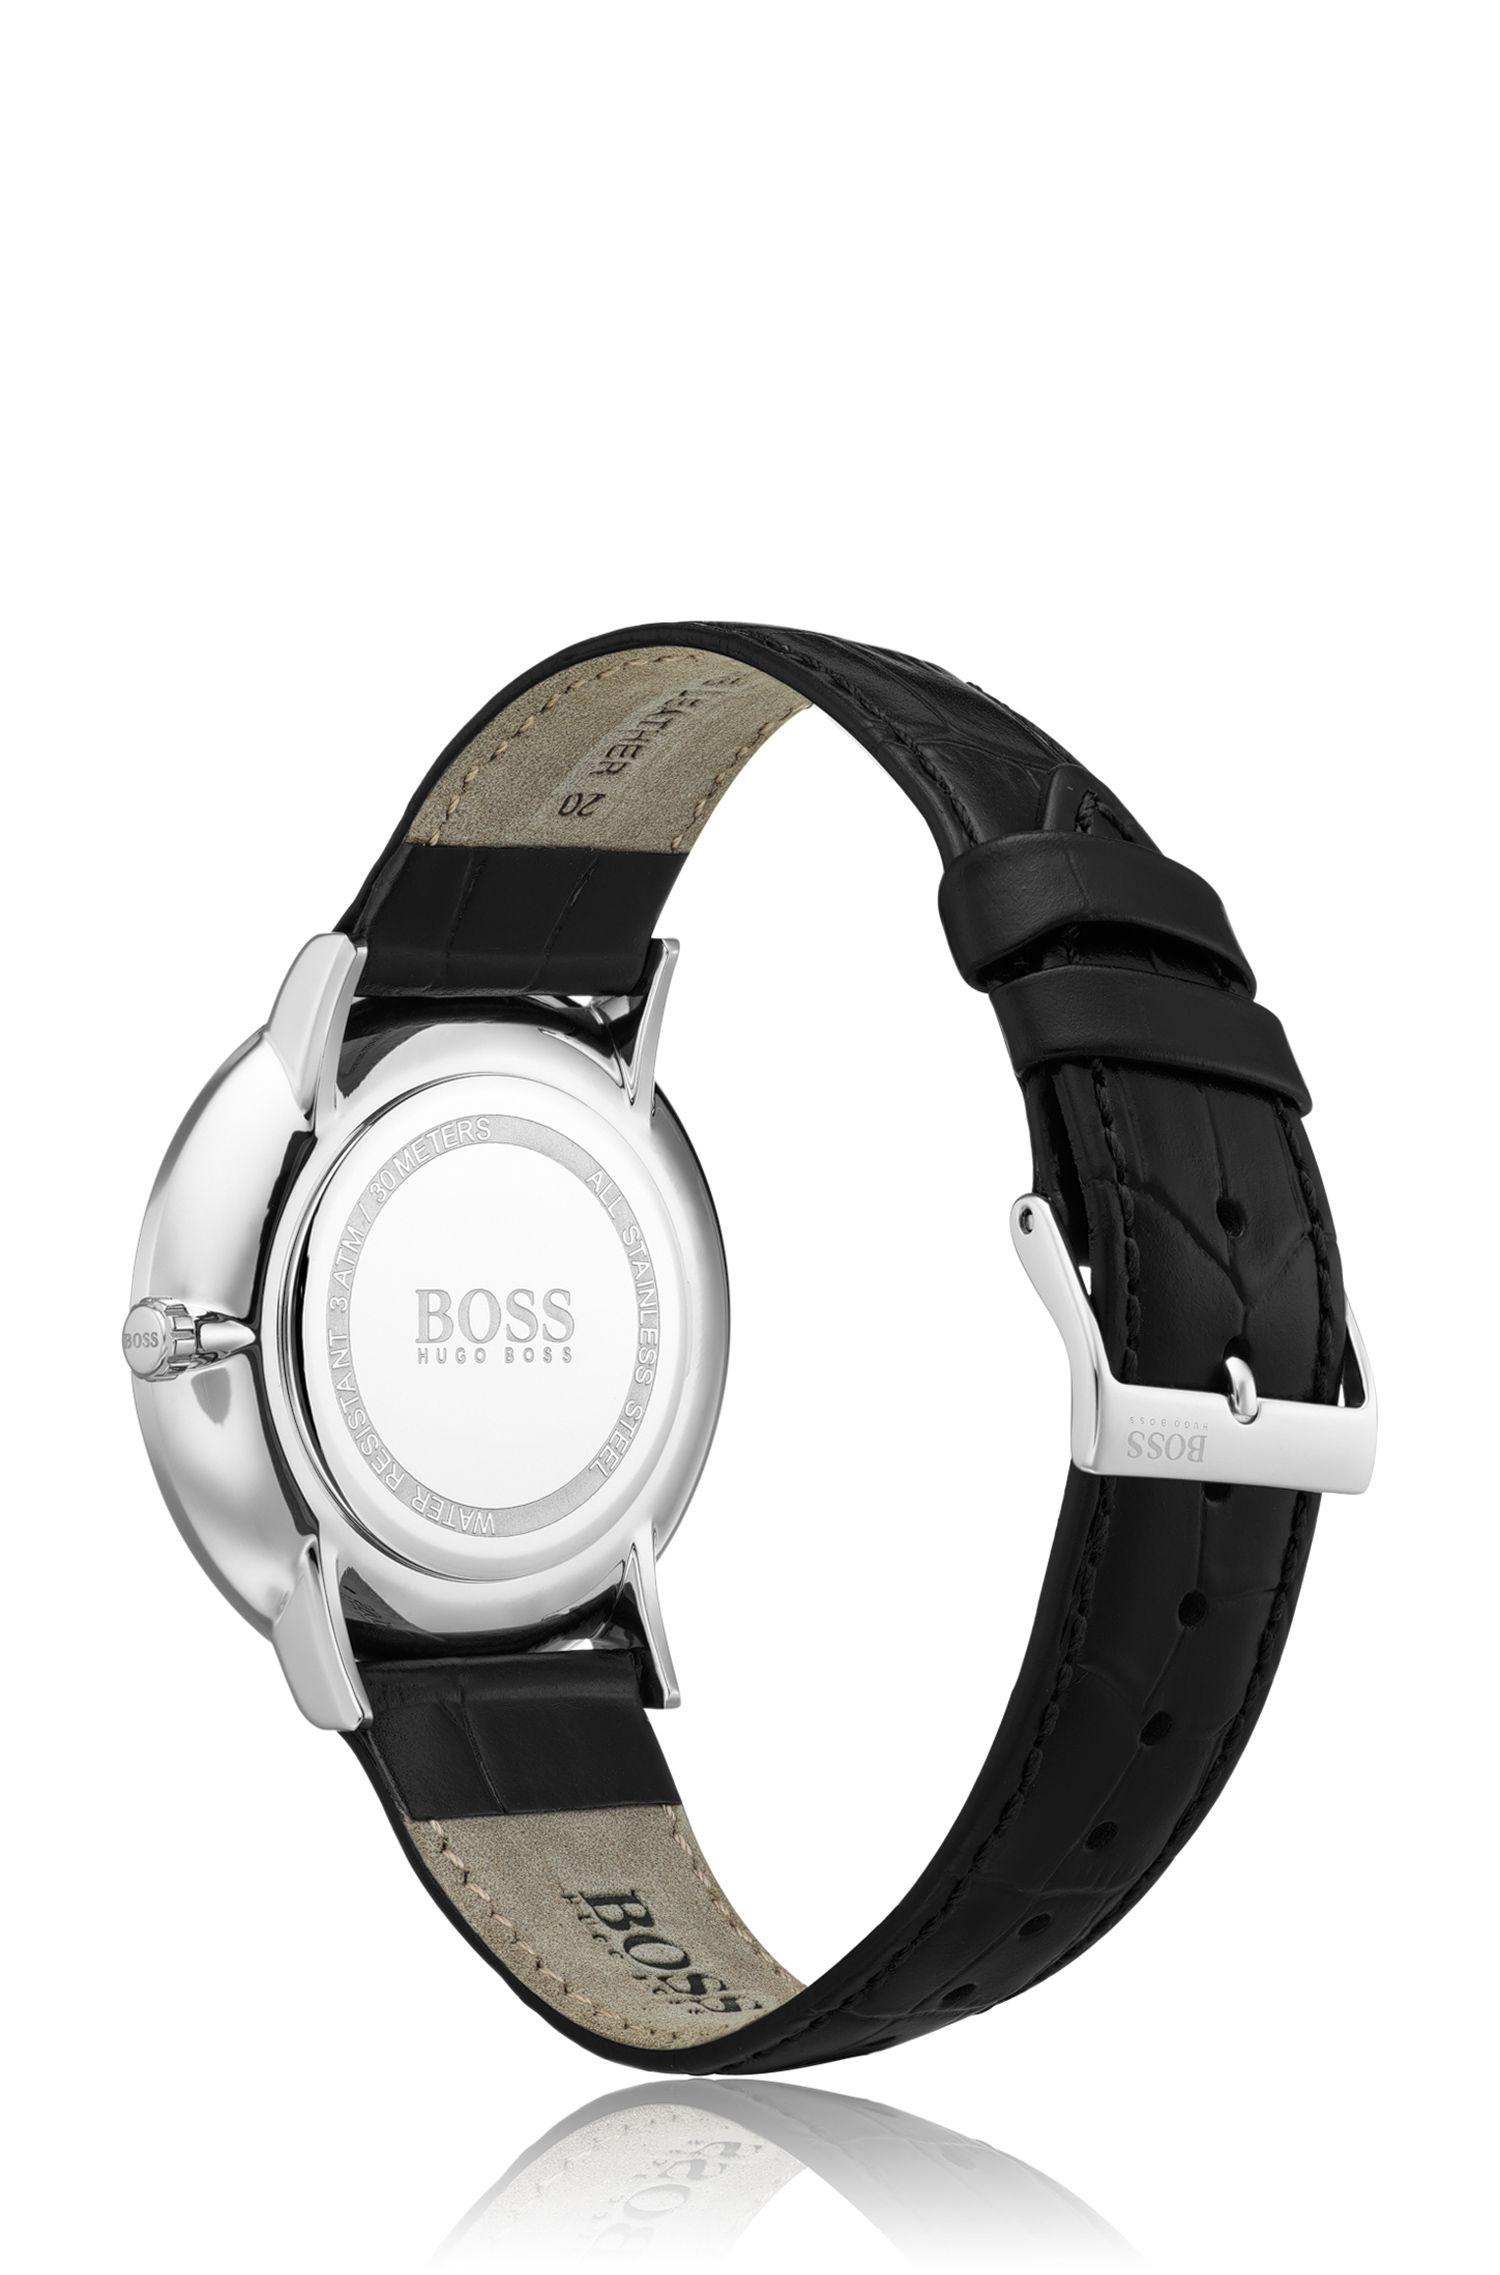 Polished stainless-steel watch with black enamel dial, Black